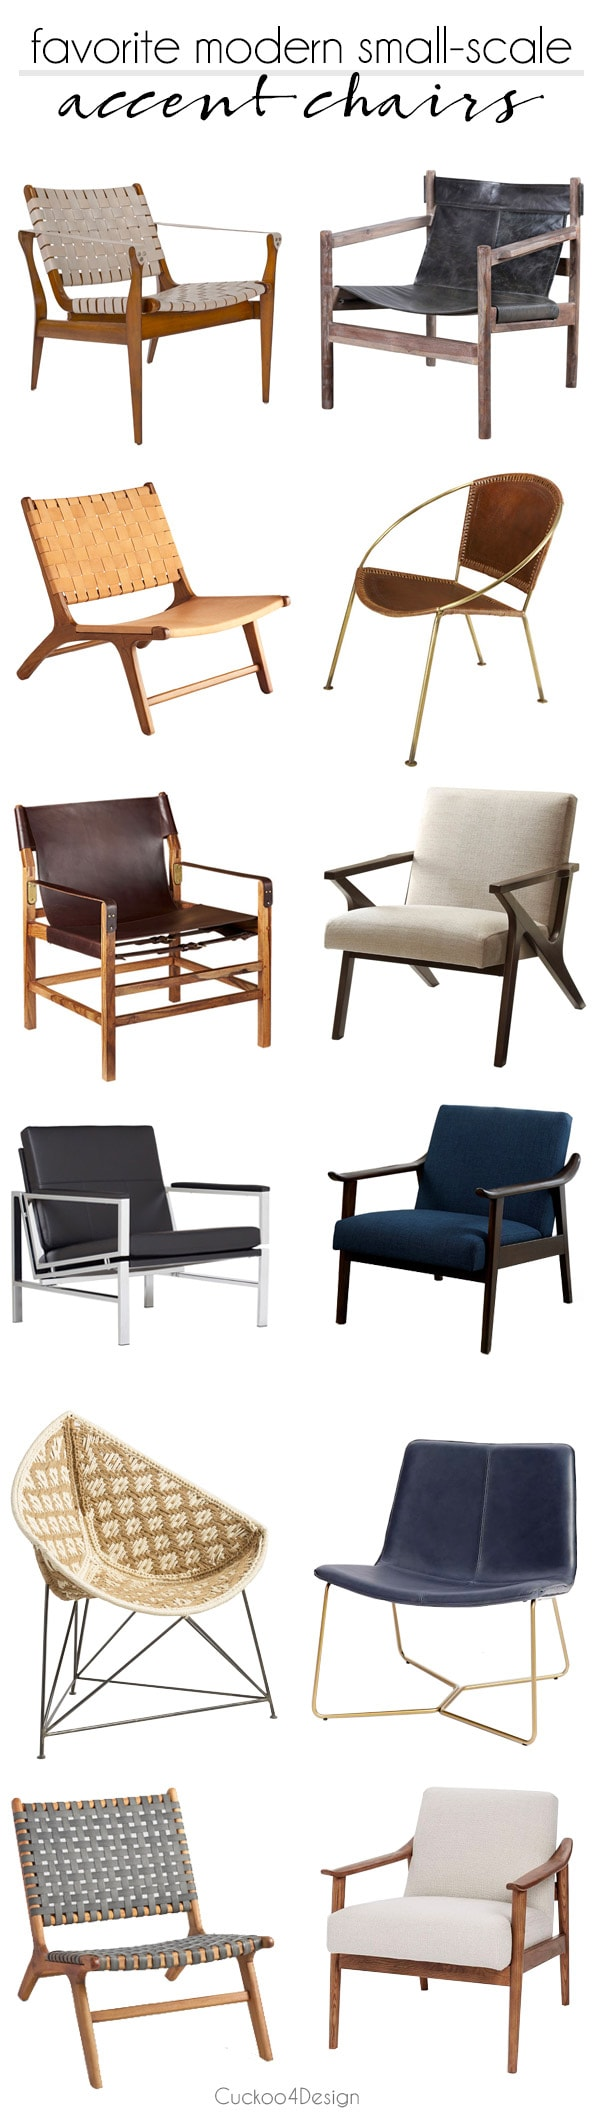 Favorite modern small-scale accent chairs | Cuckoo4Design